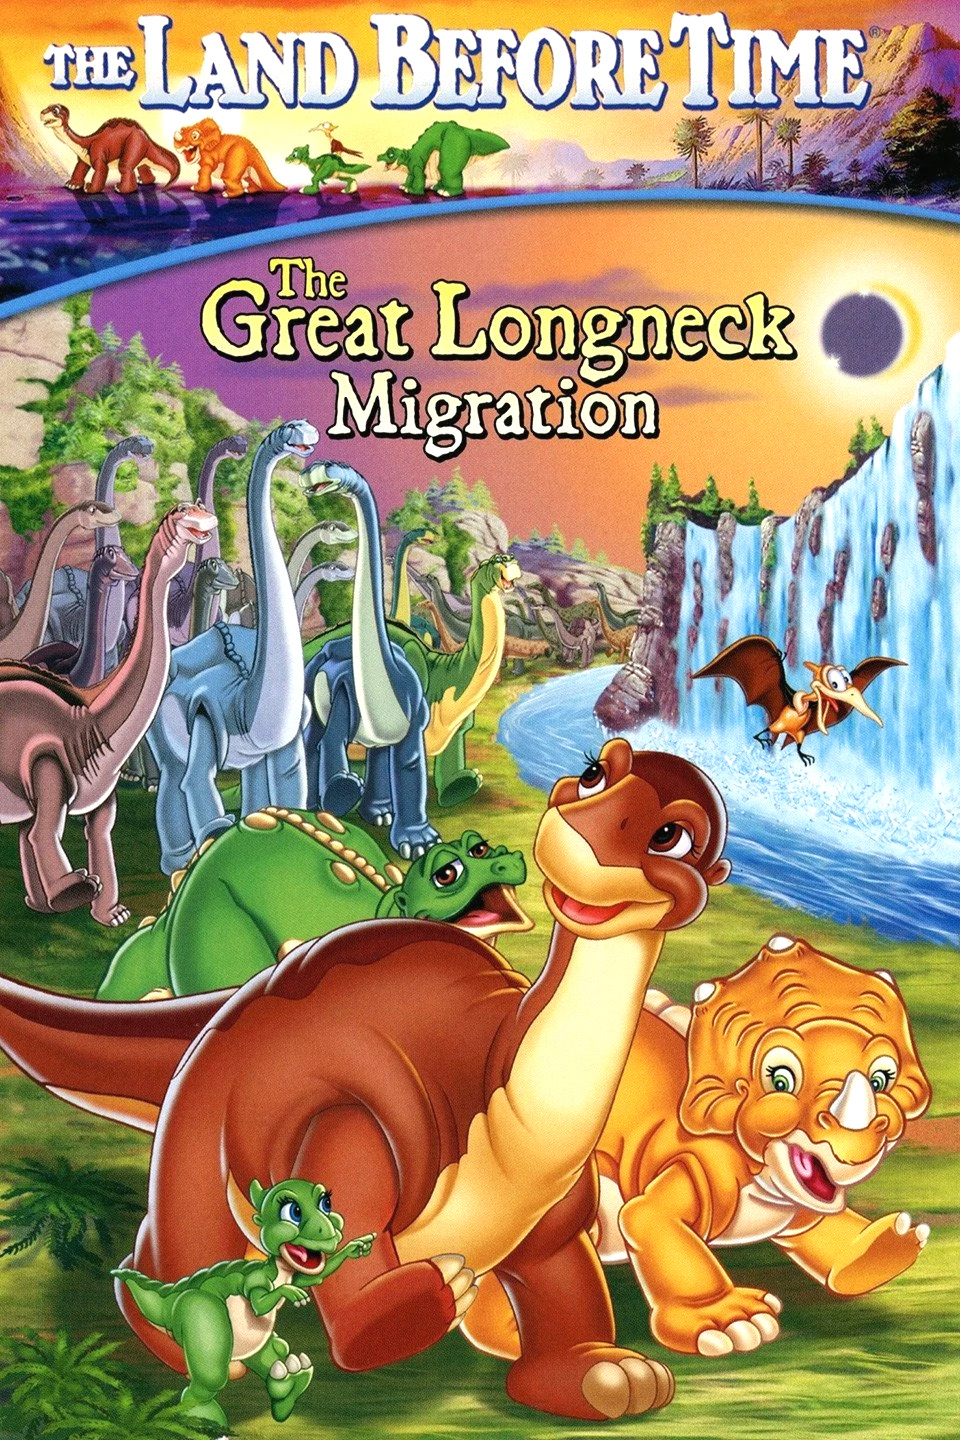 File:The Great Longneck Migration video cover.jpg